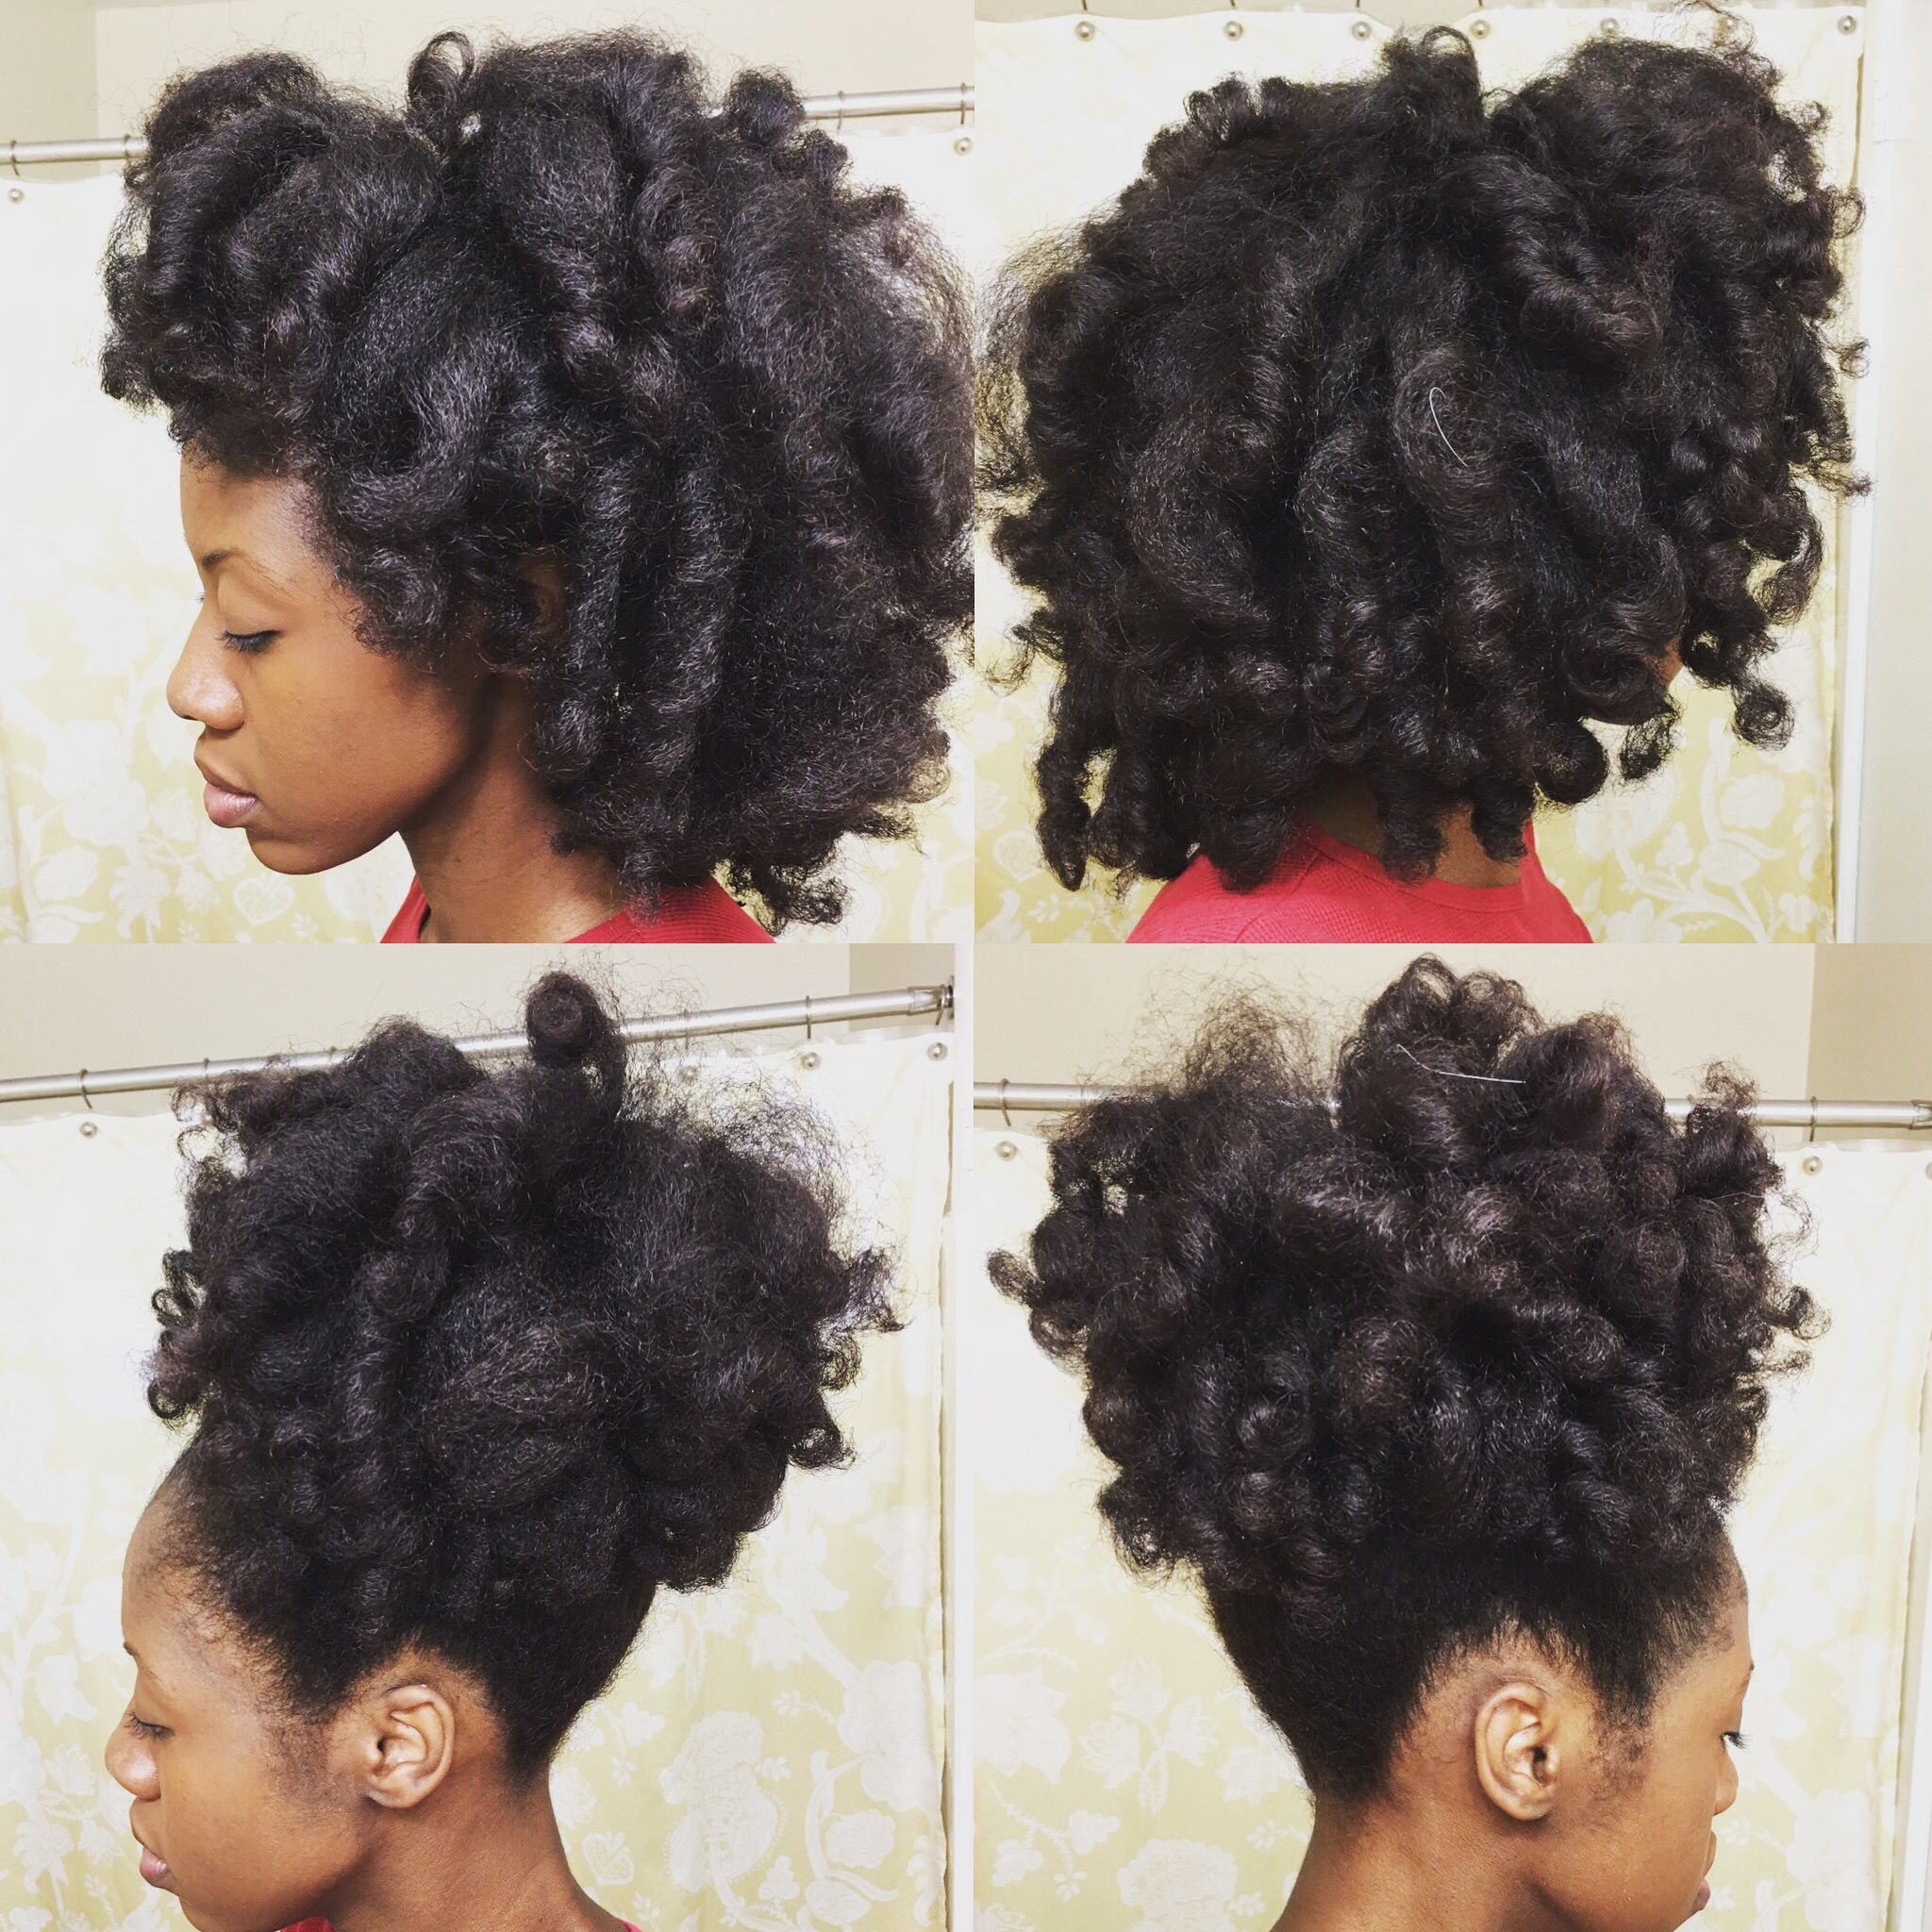 perm rod curls on blow dried hair | perm rod set, perm rods and